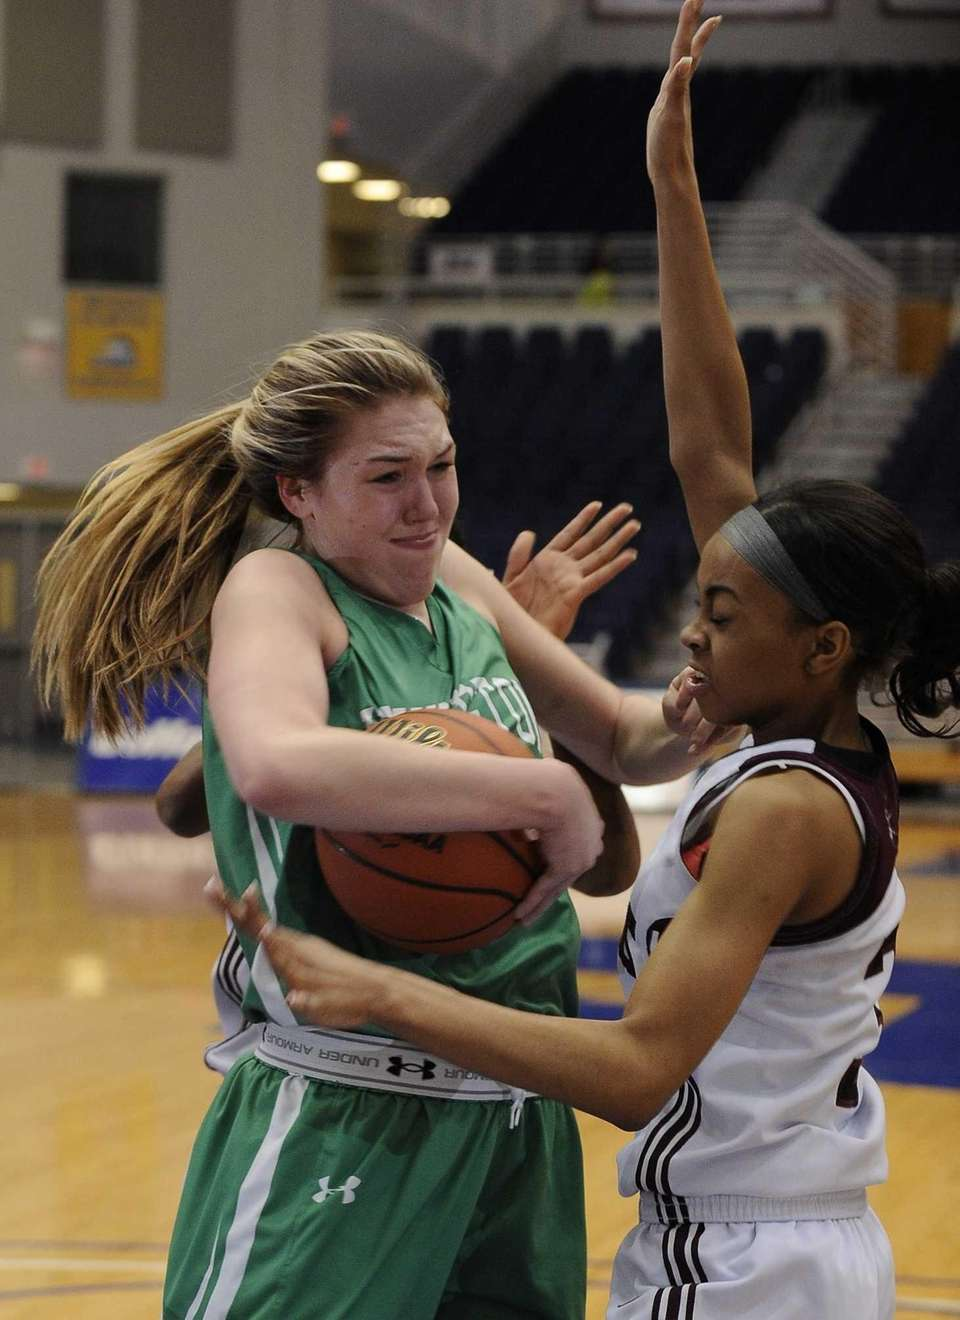 Southampton's Dominique Taylor defends against Irvington's Lexi Martins